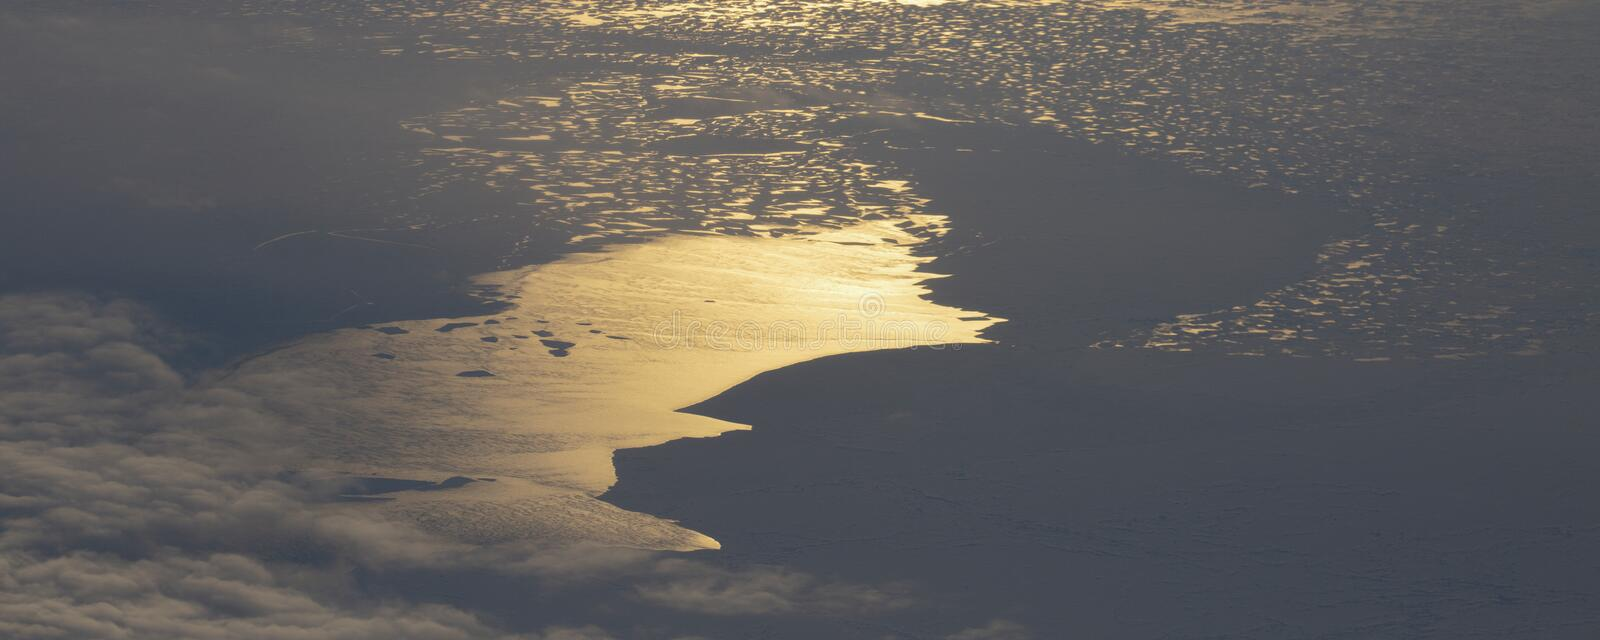 5Take an aerial view of the ice and sunrise over the bering strait.(1). The bering strait is located in the high latitudes, cold weather, many storms royalty free stock images